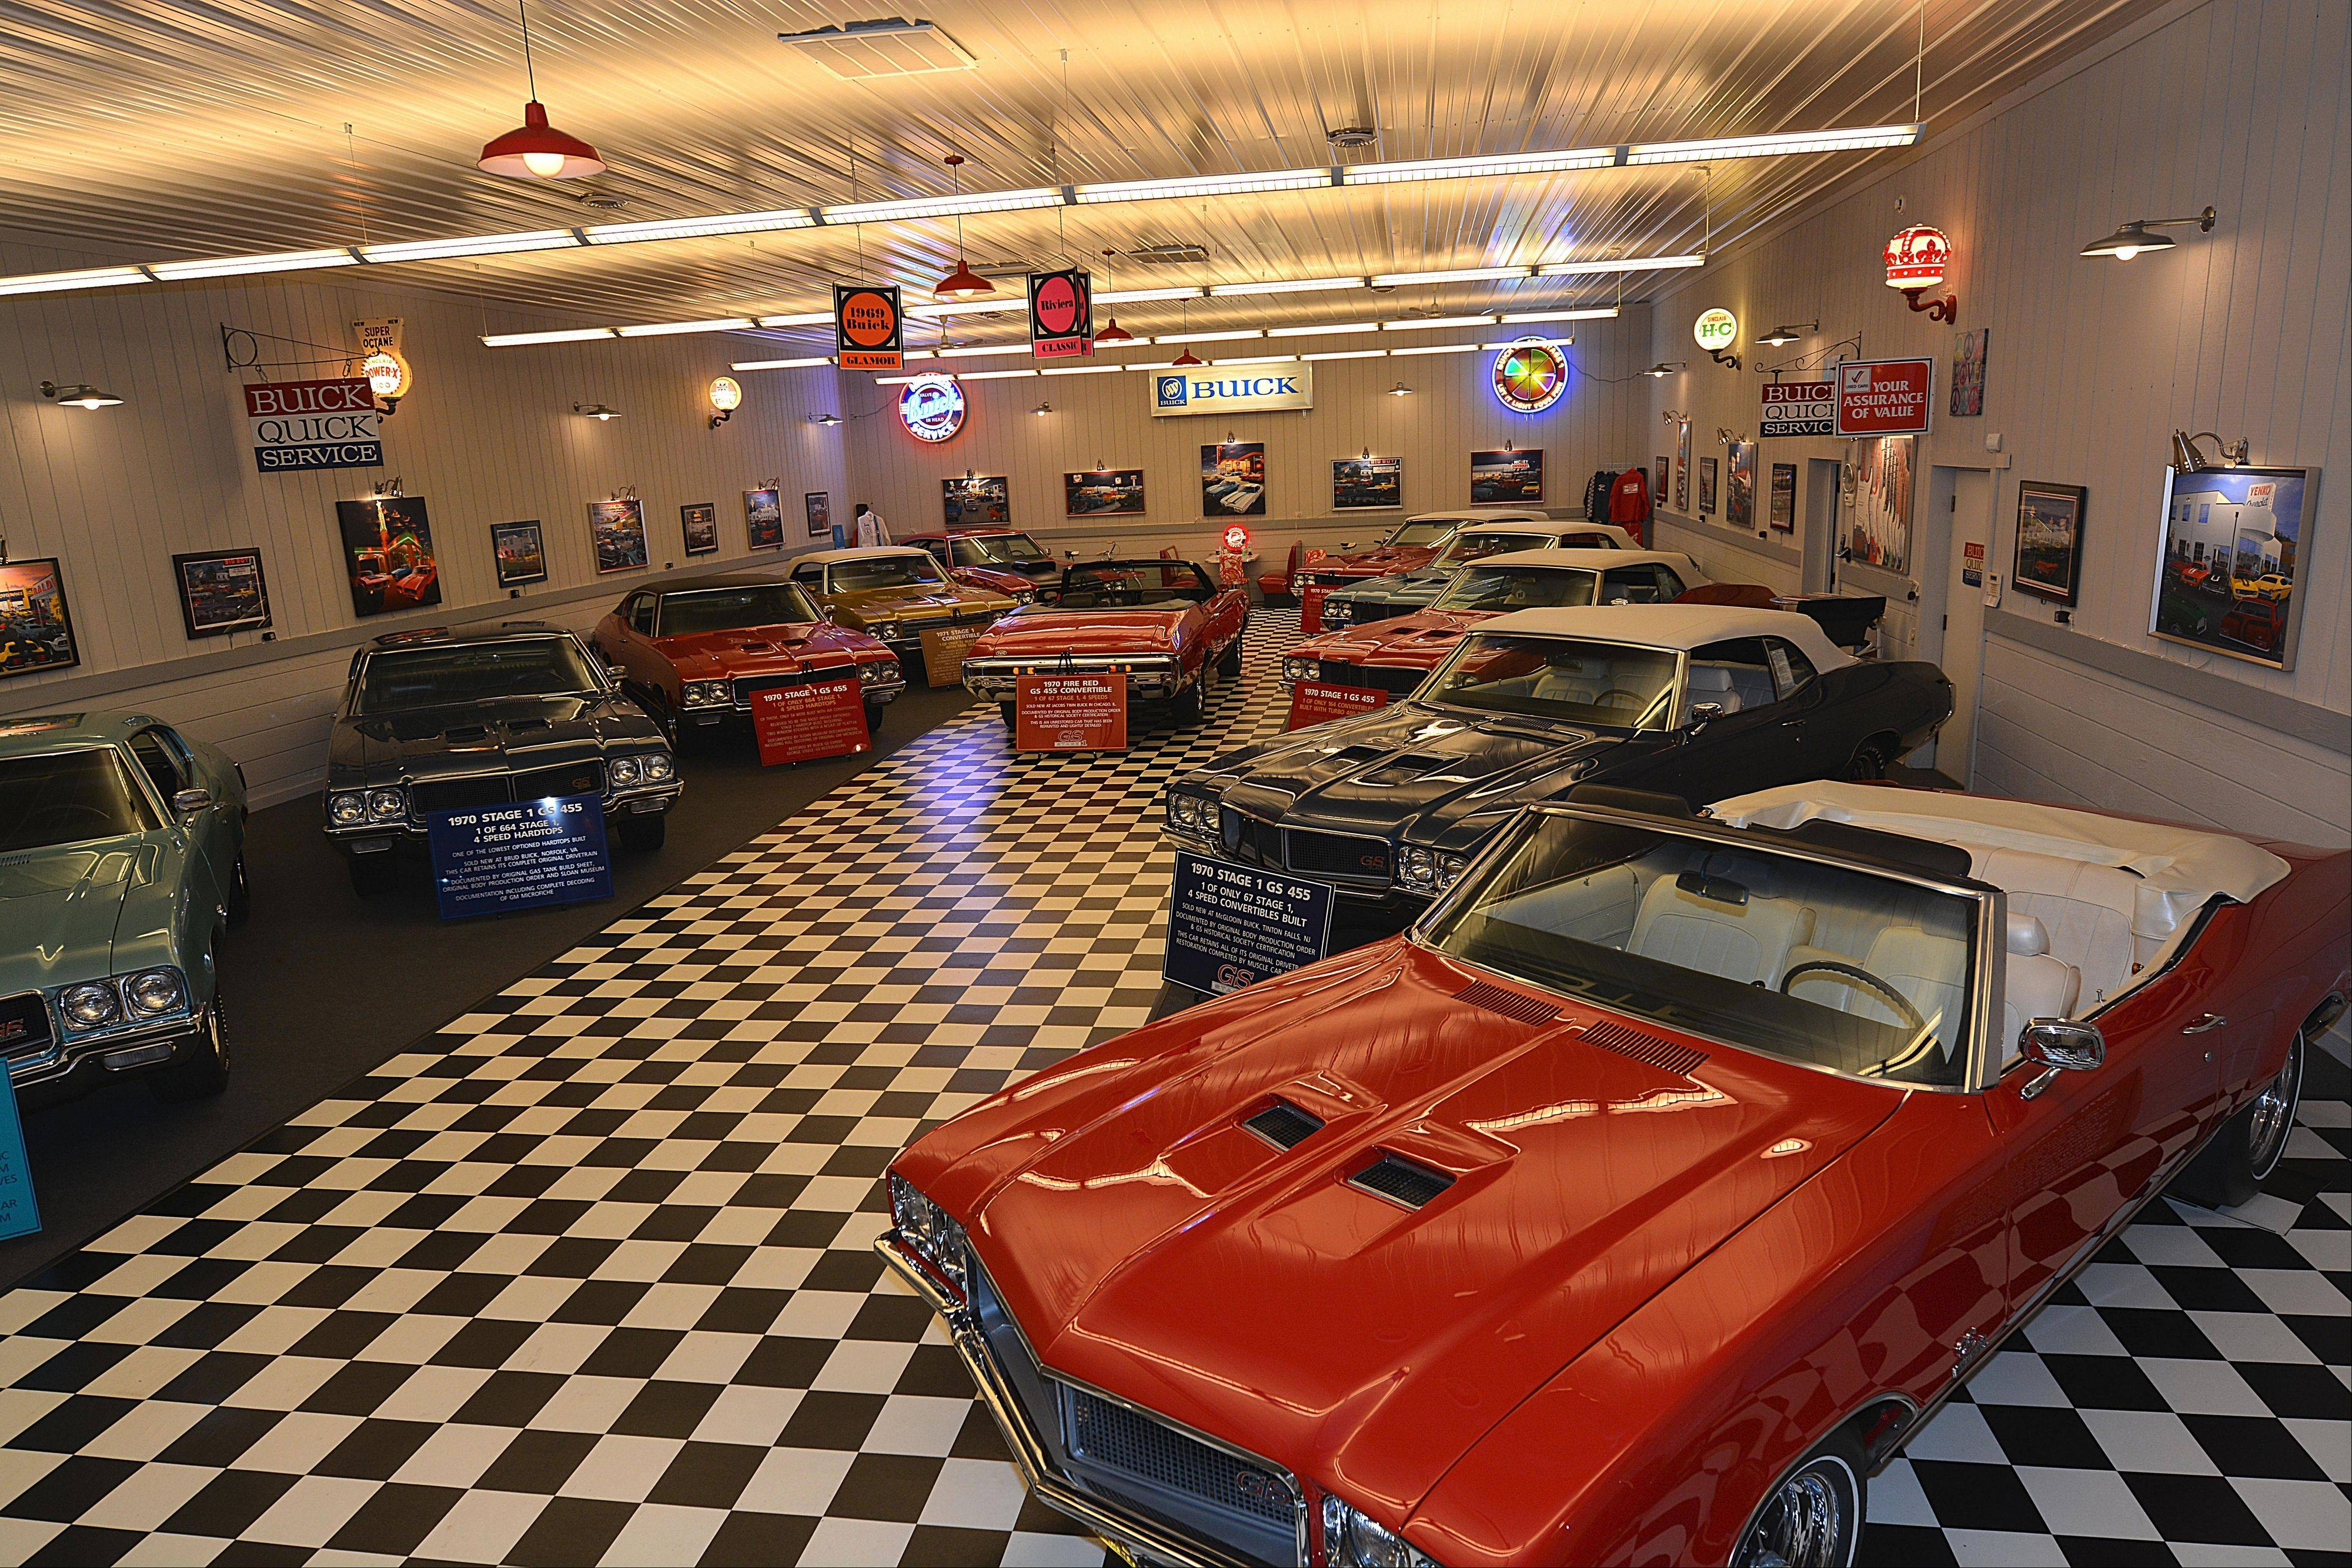 The couple's collection currently consists of 17 rare V-8 bruisers, all Buicks dating from 1969-72.